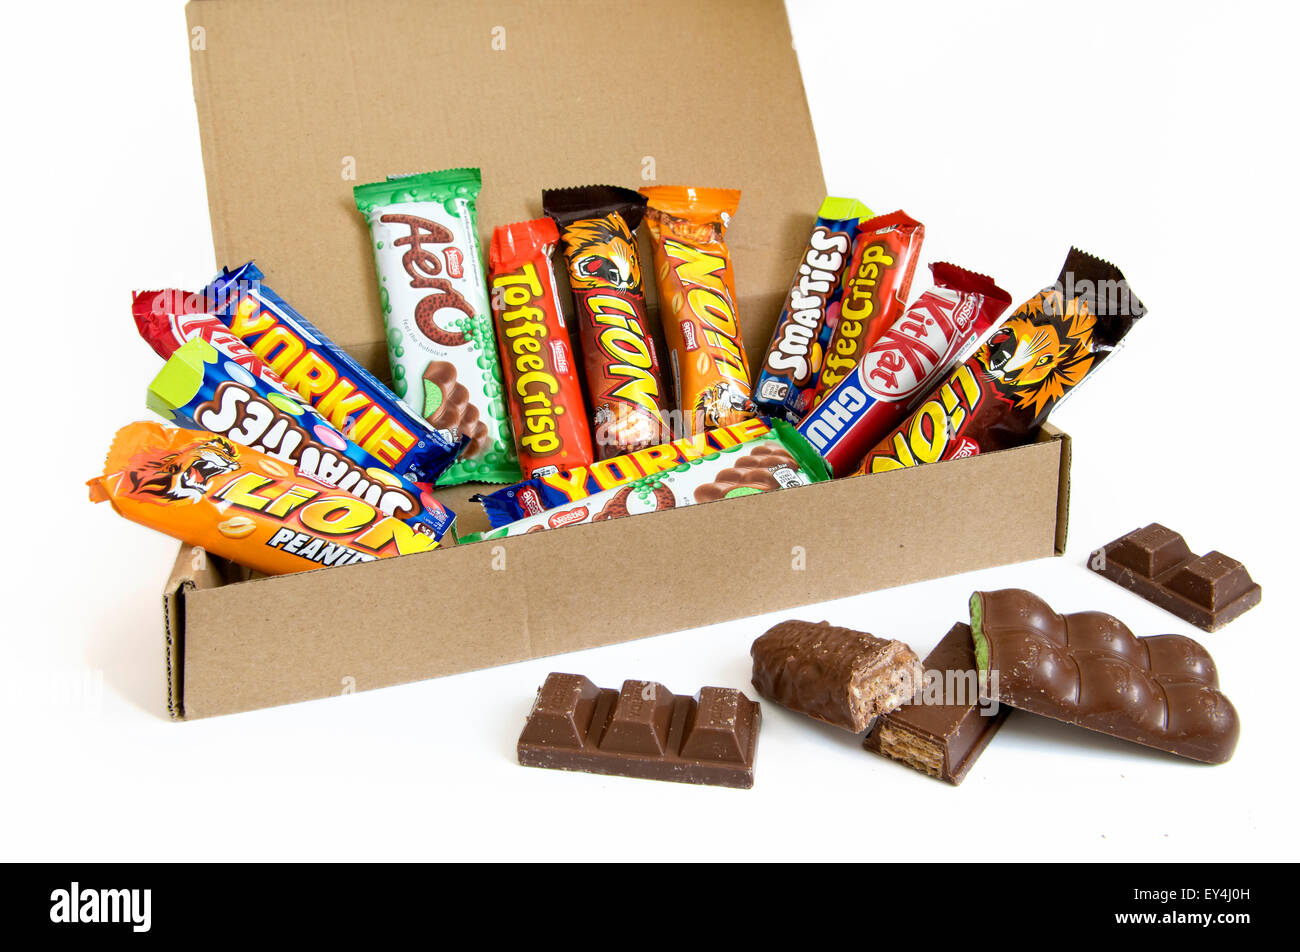 A box of Nestle chocolate bar selection Stock Photo, Royalty Free ...